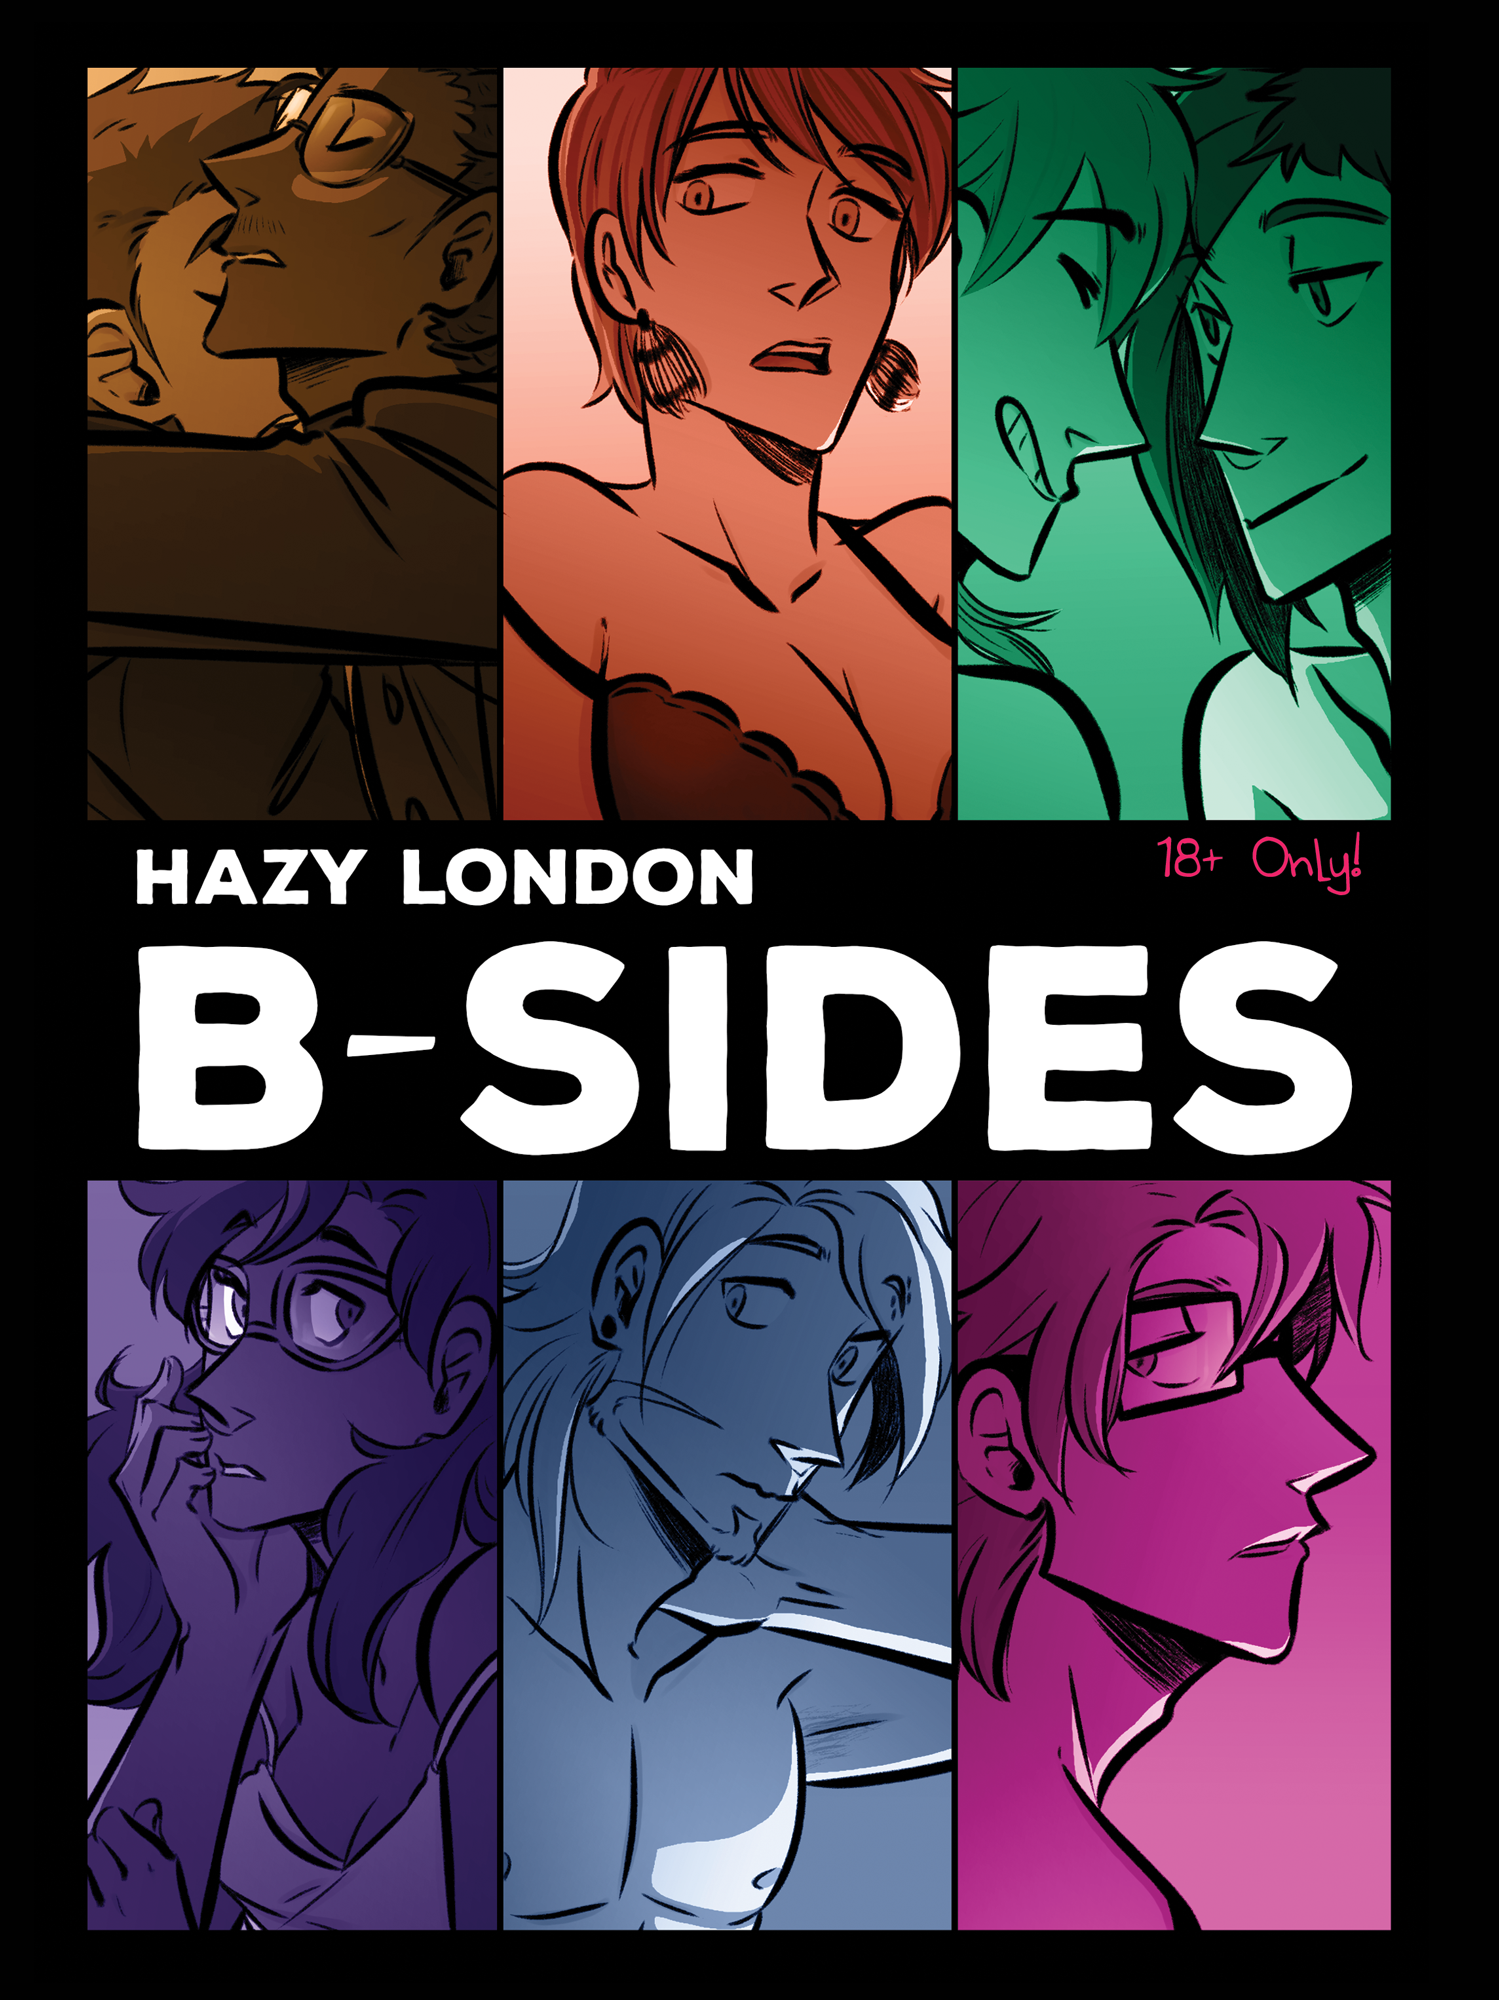 Hazy London B-Sides from Crystal Jayme (Scotty) - Webcomic Merchandise